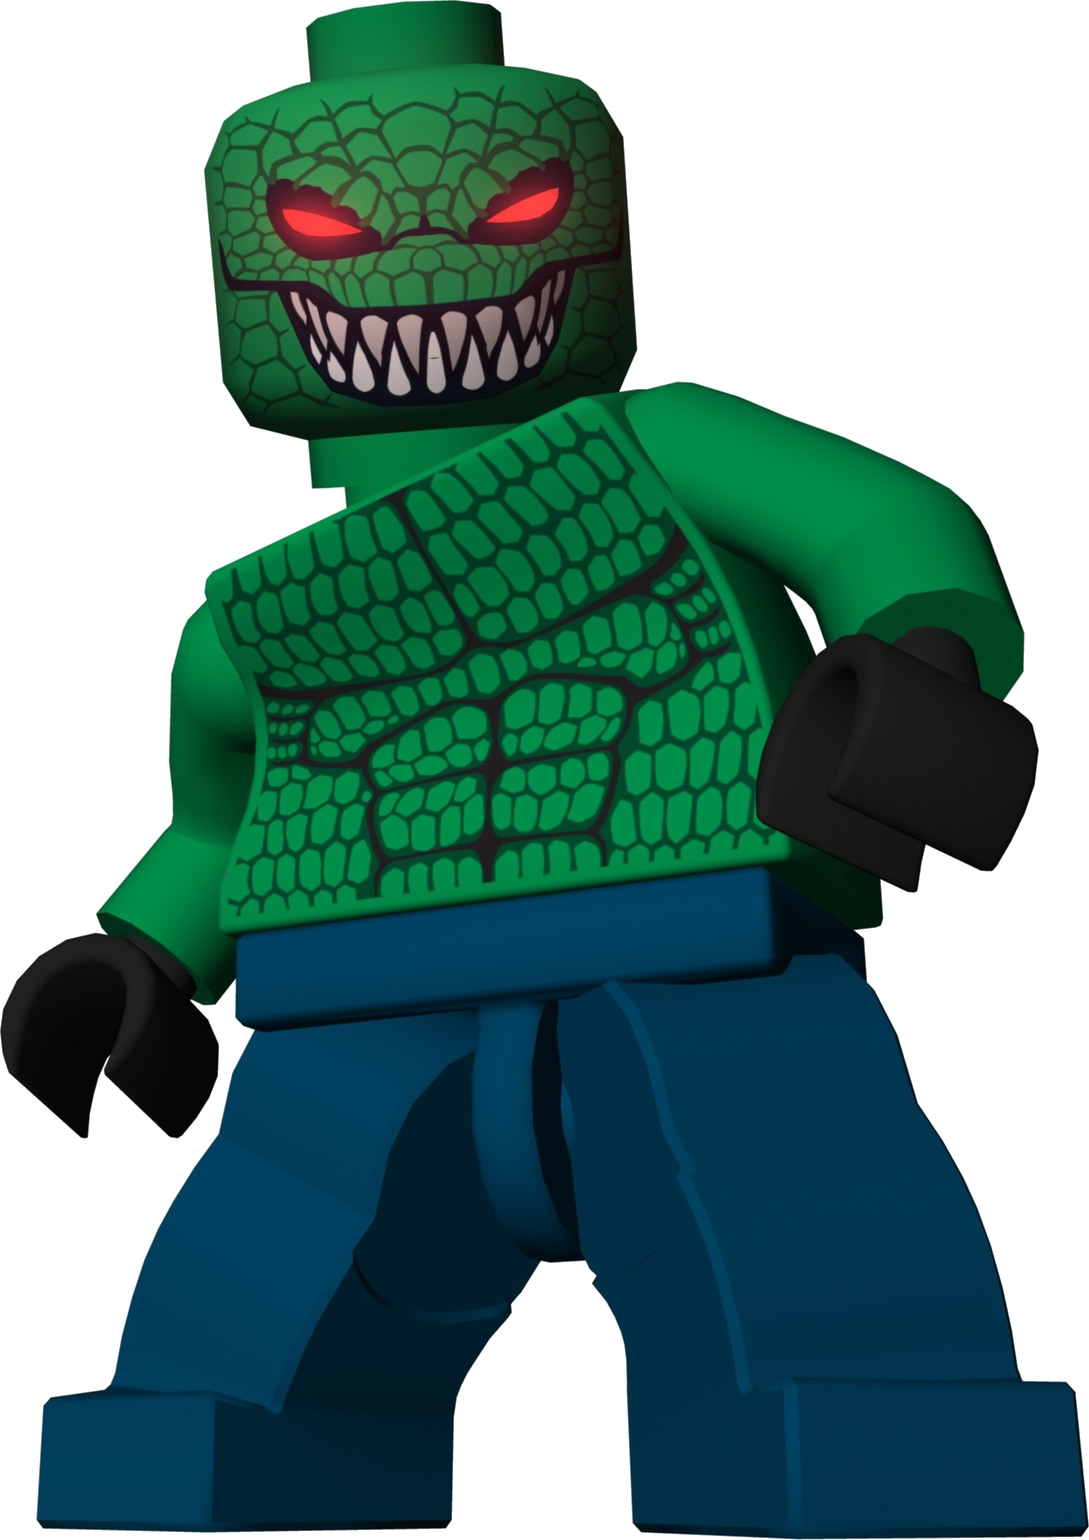 June 2013 Lego Killer Croc 2013